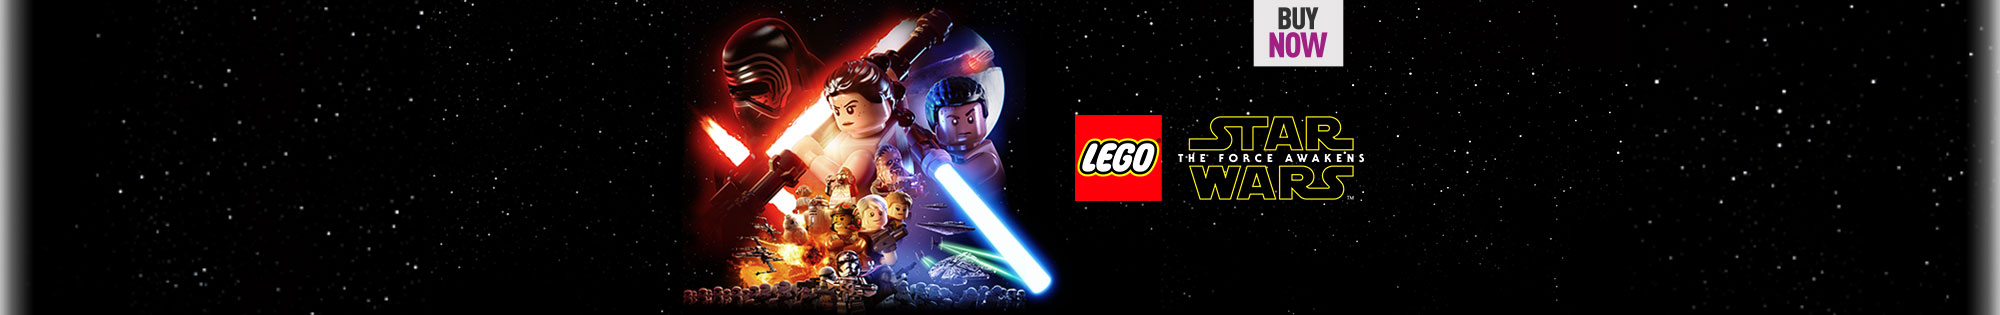 LEGO Star Wars The Force Awakens including Only At GAME Special Edition for Xbox One, PS4, Xbox 360, PS3, Wii U and PC - Buy Now at GAME.co.uk!